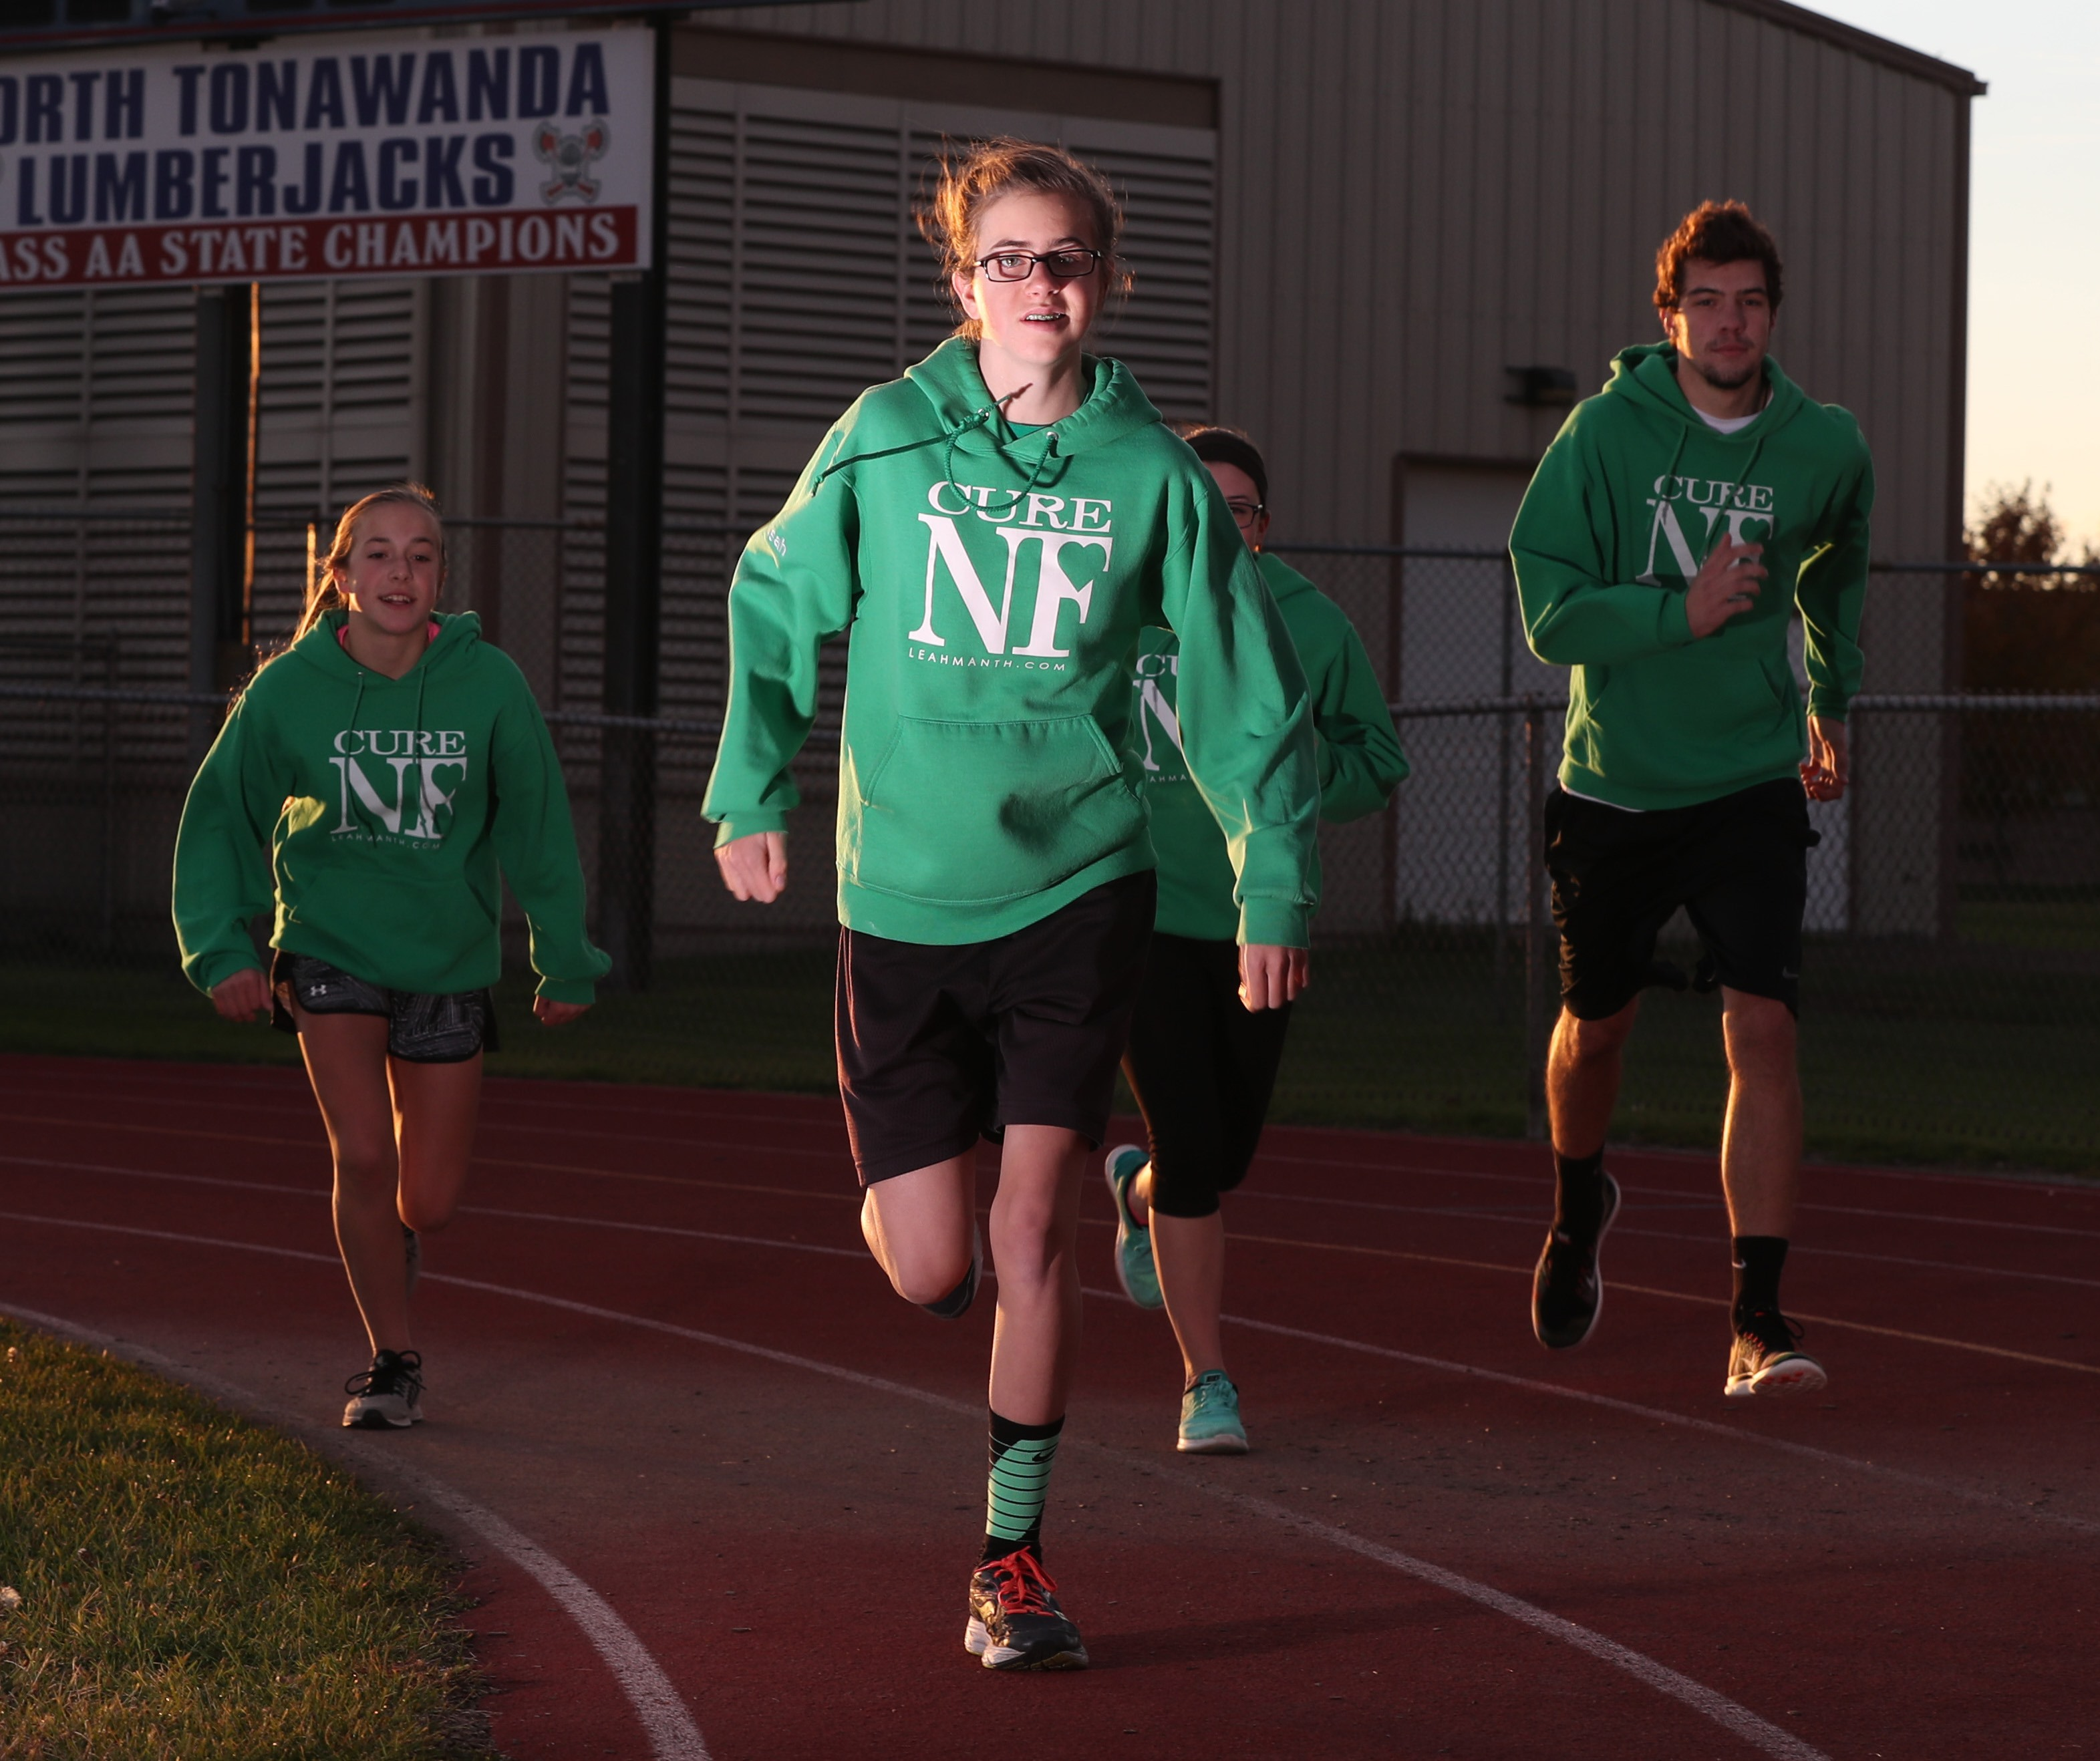 Leah Manth is a cross country/track runner with Neurofibromitosis. There is no cure for her condition. (James P. McCoy/Buffalo News)